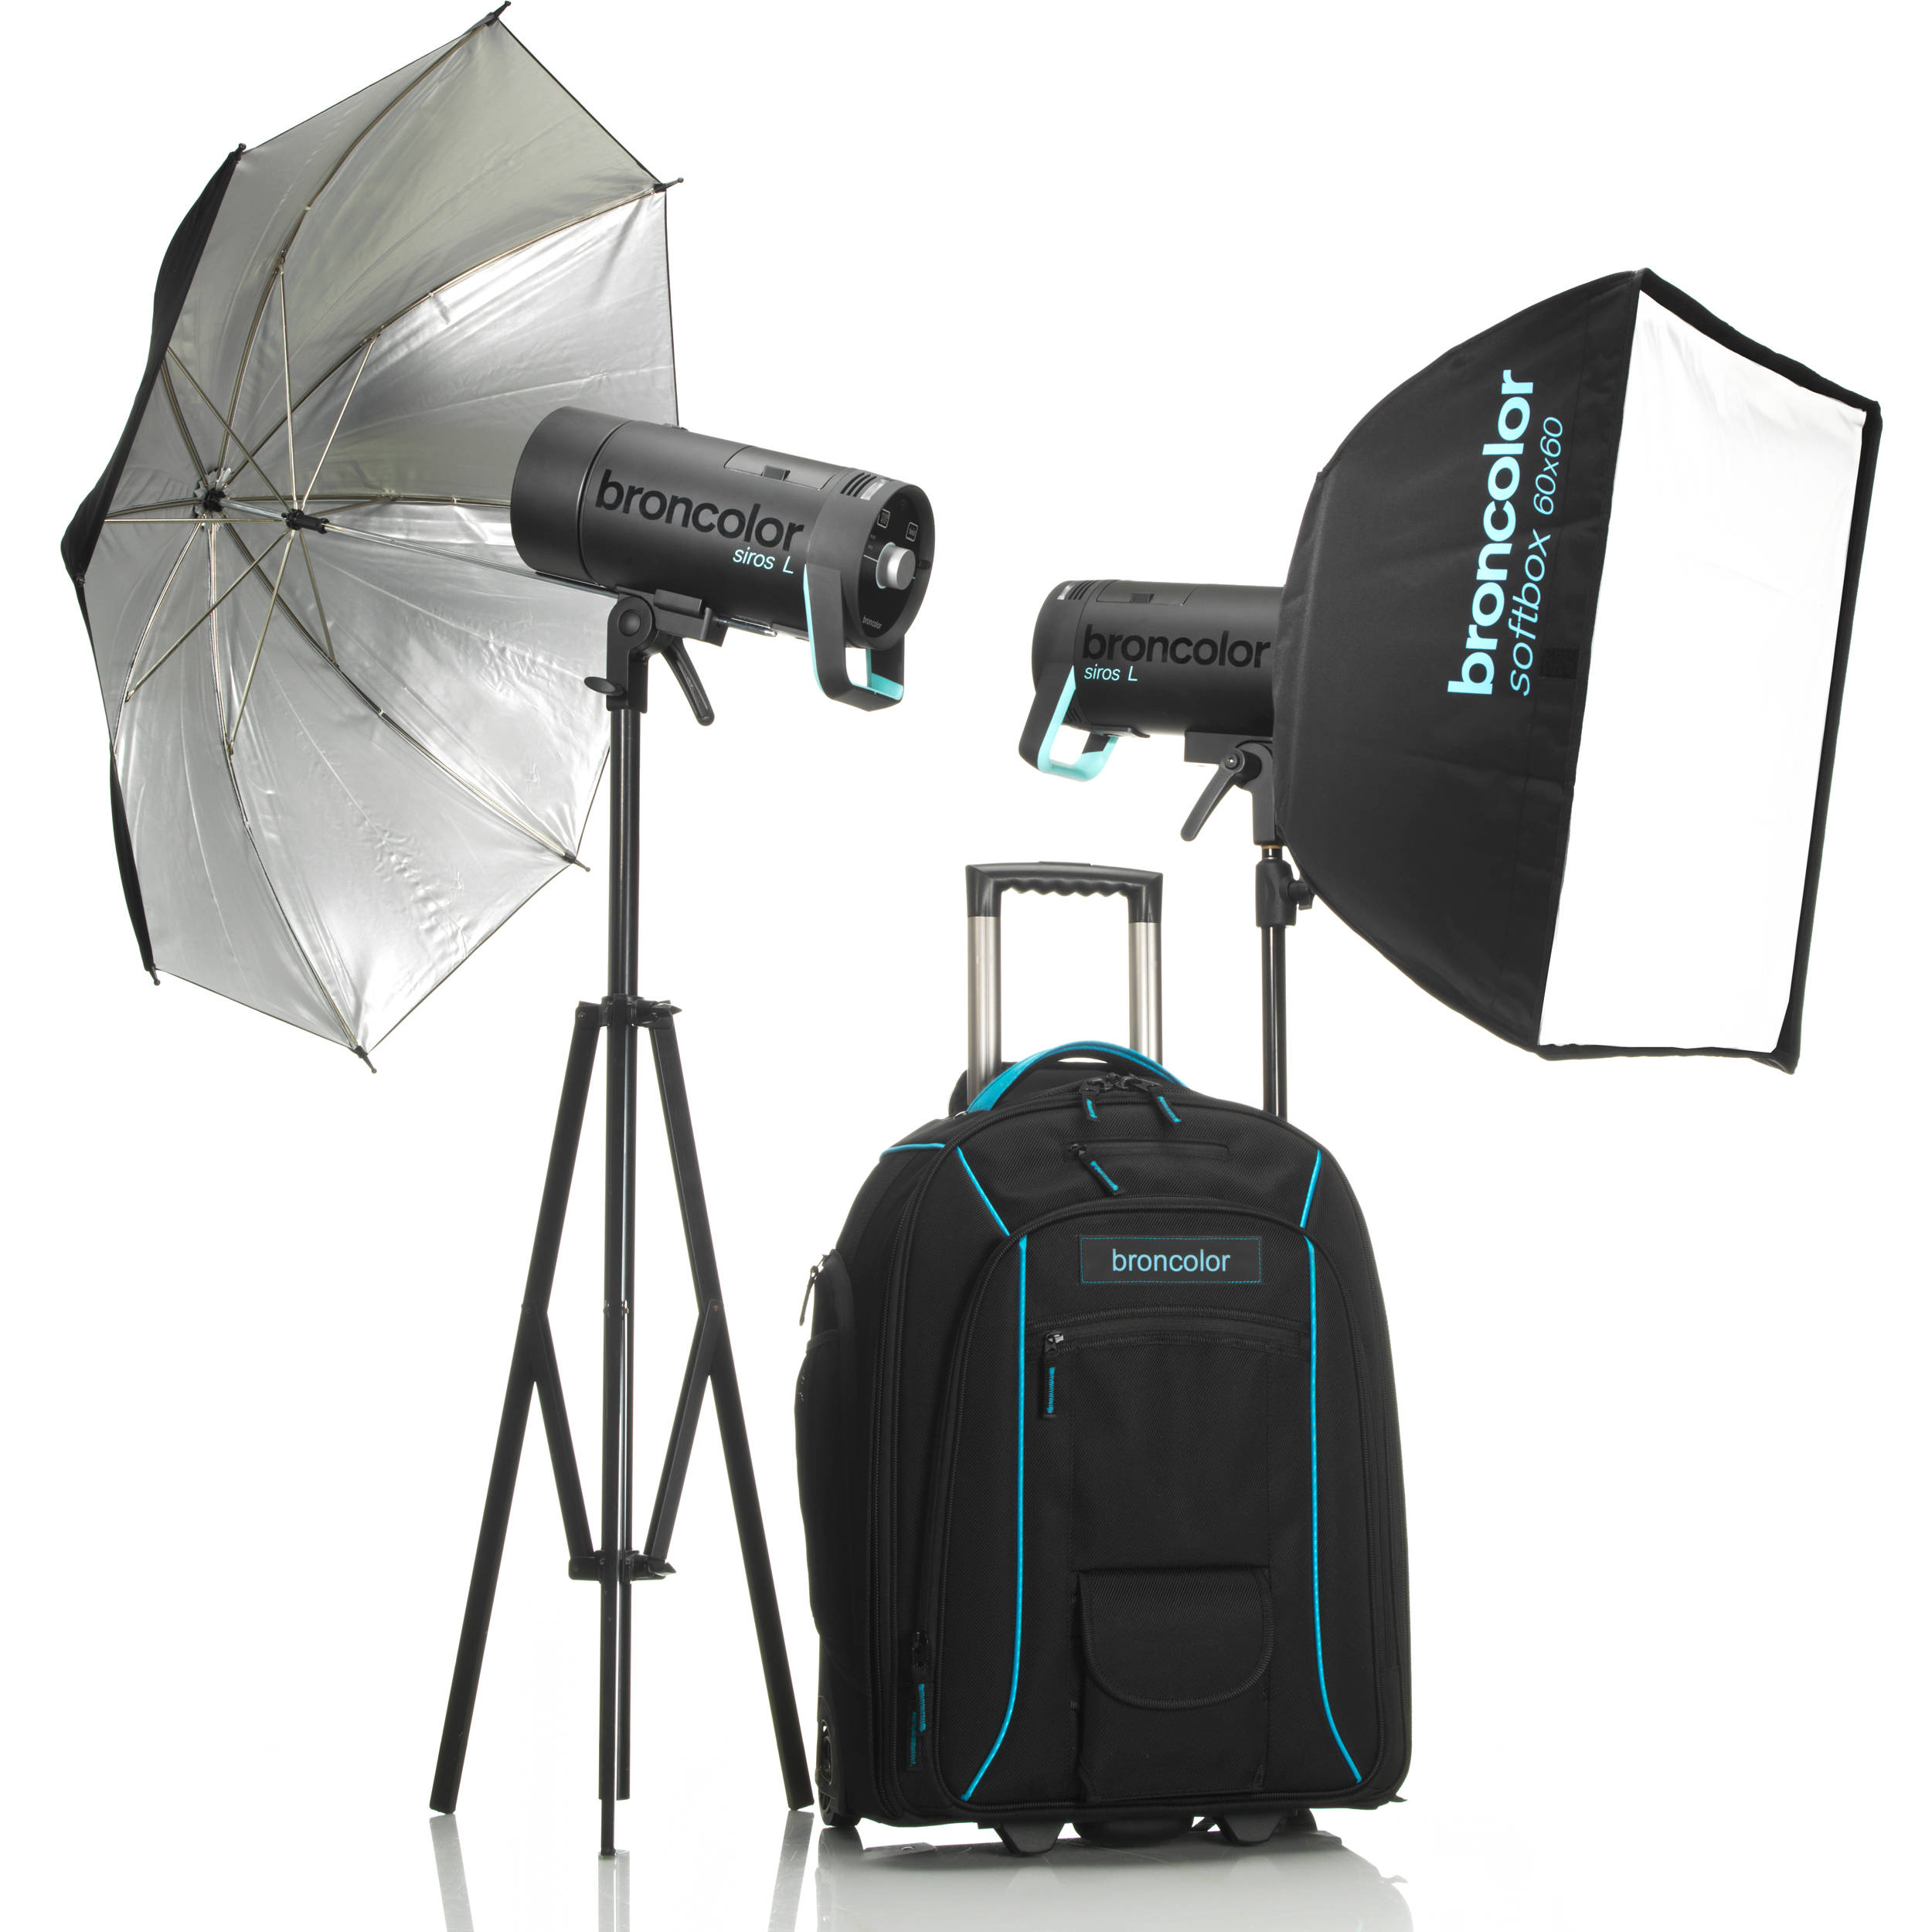 Broncolor Siros 800 L Battery Ed 2 Light Outdoor Kit